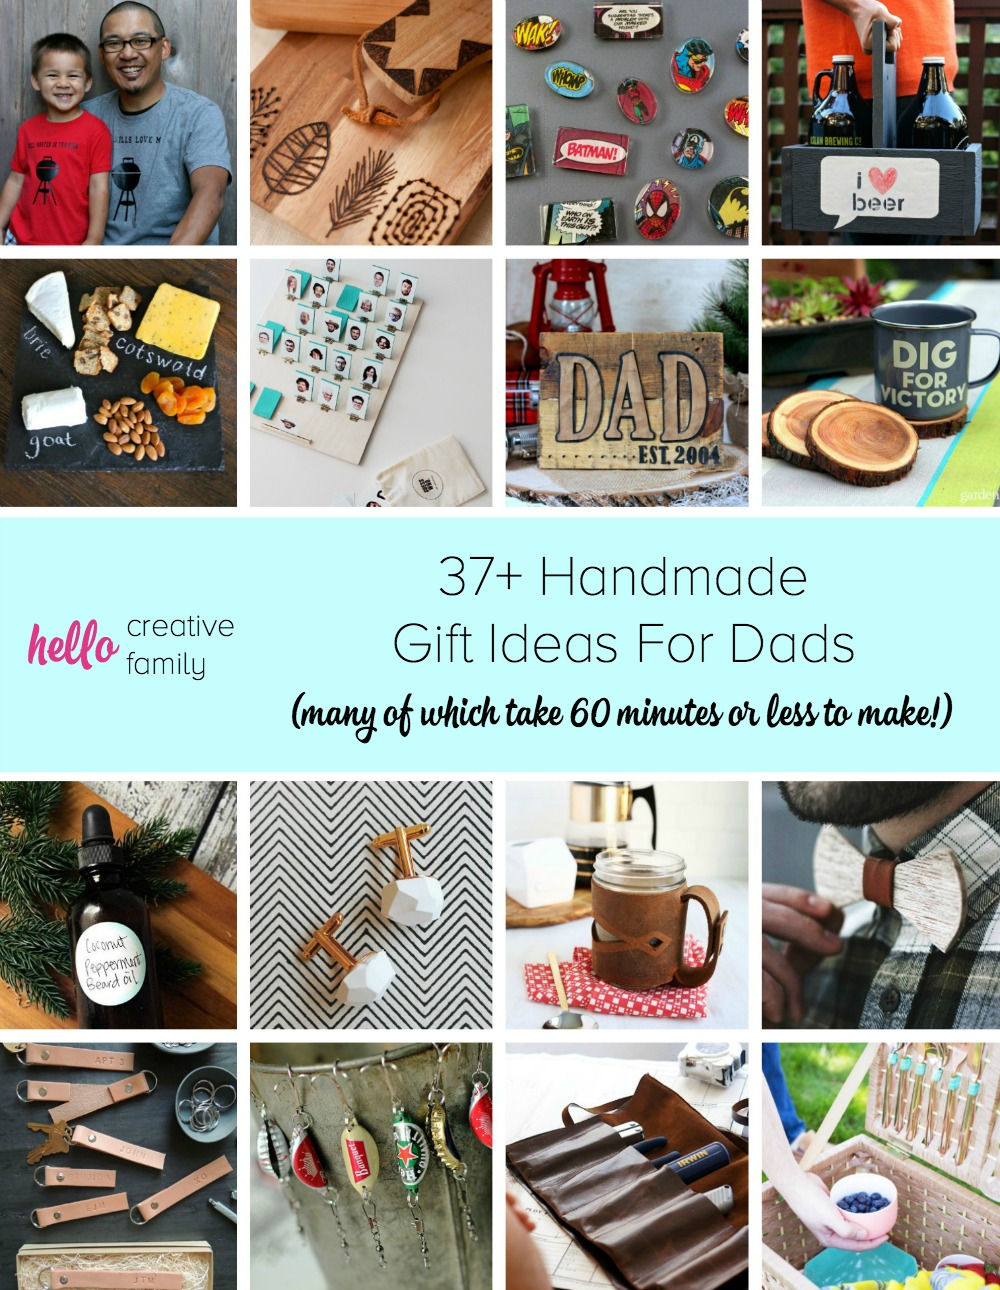 37+ Handmade Gift Ideas For Dads (many of which take 60 minutes or less